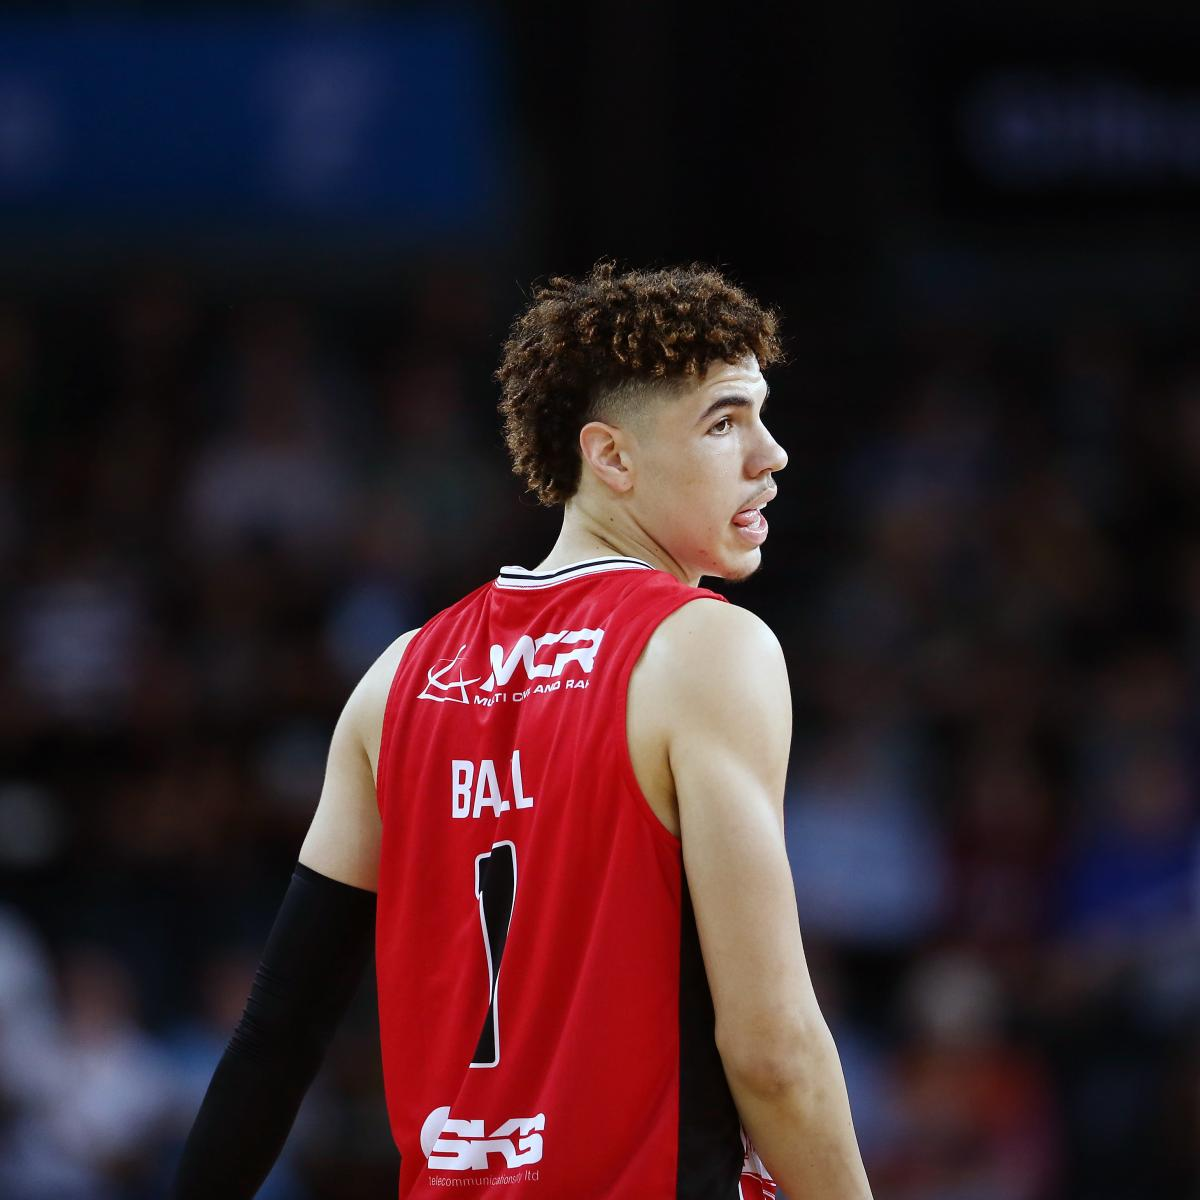 2020 NBA Mock Draft: Predicting Landing Spots for LaMelo Ball, Top Prospects